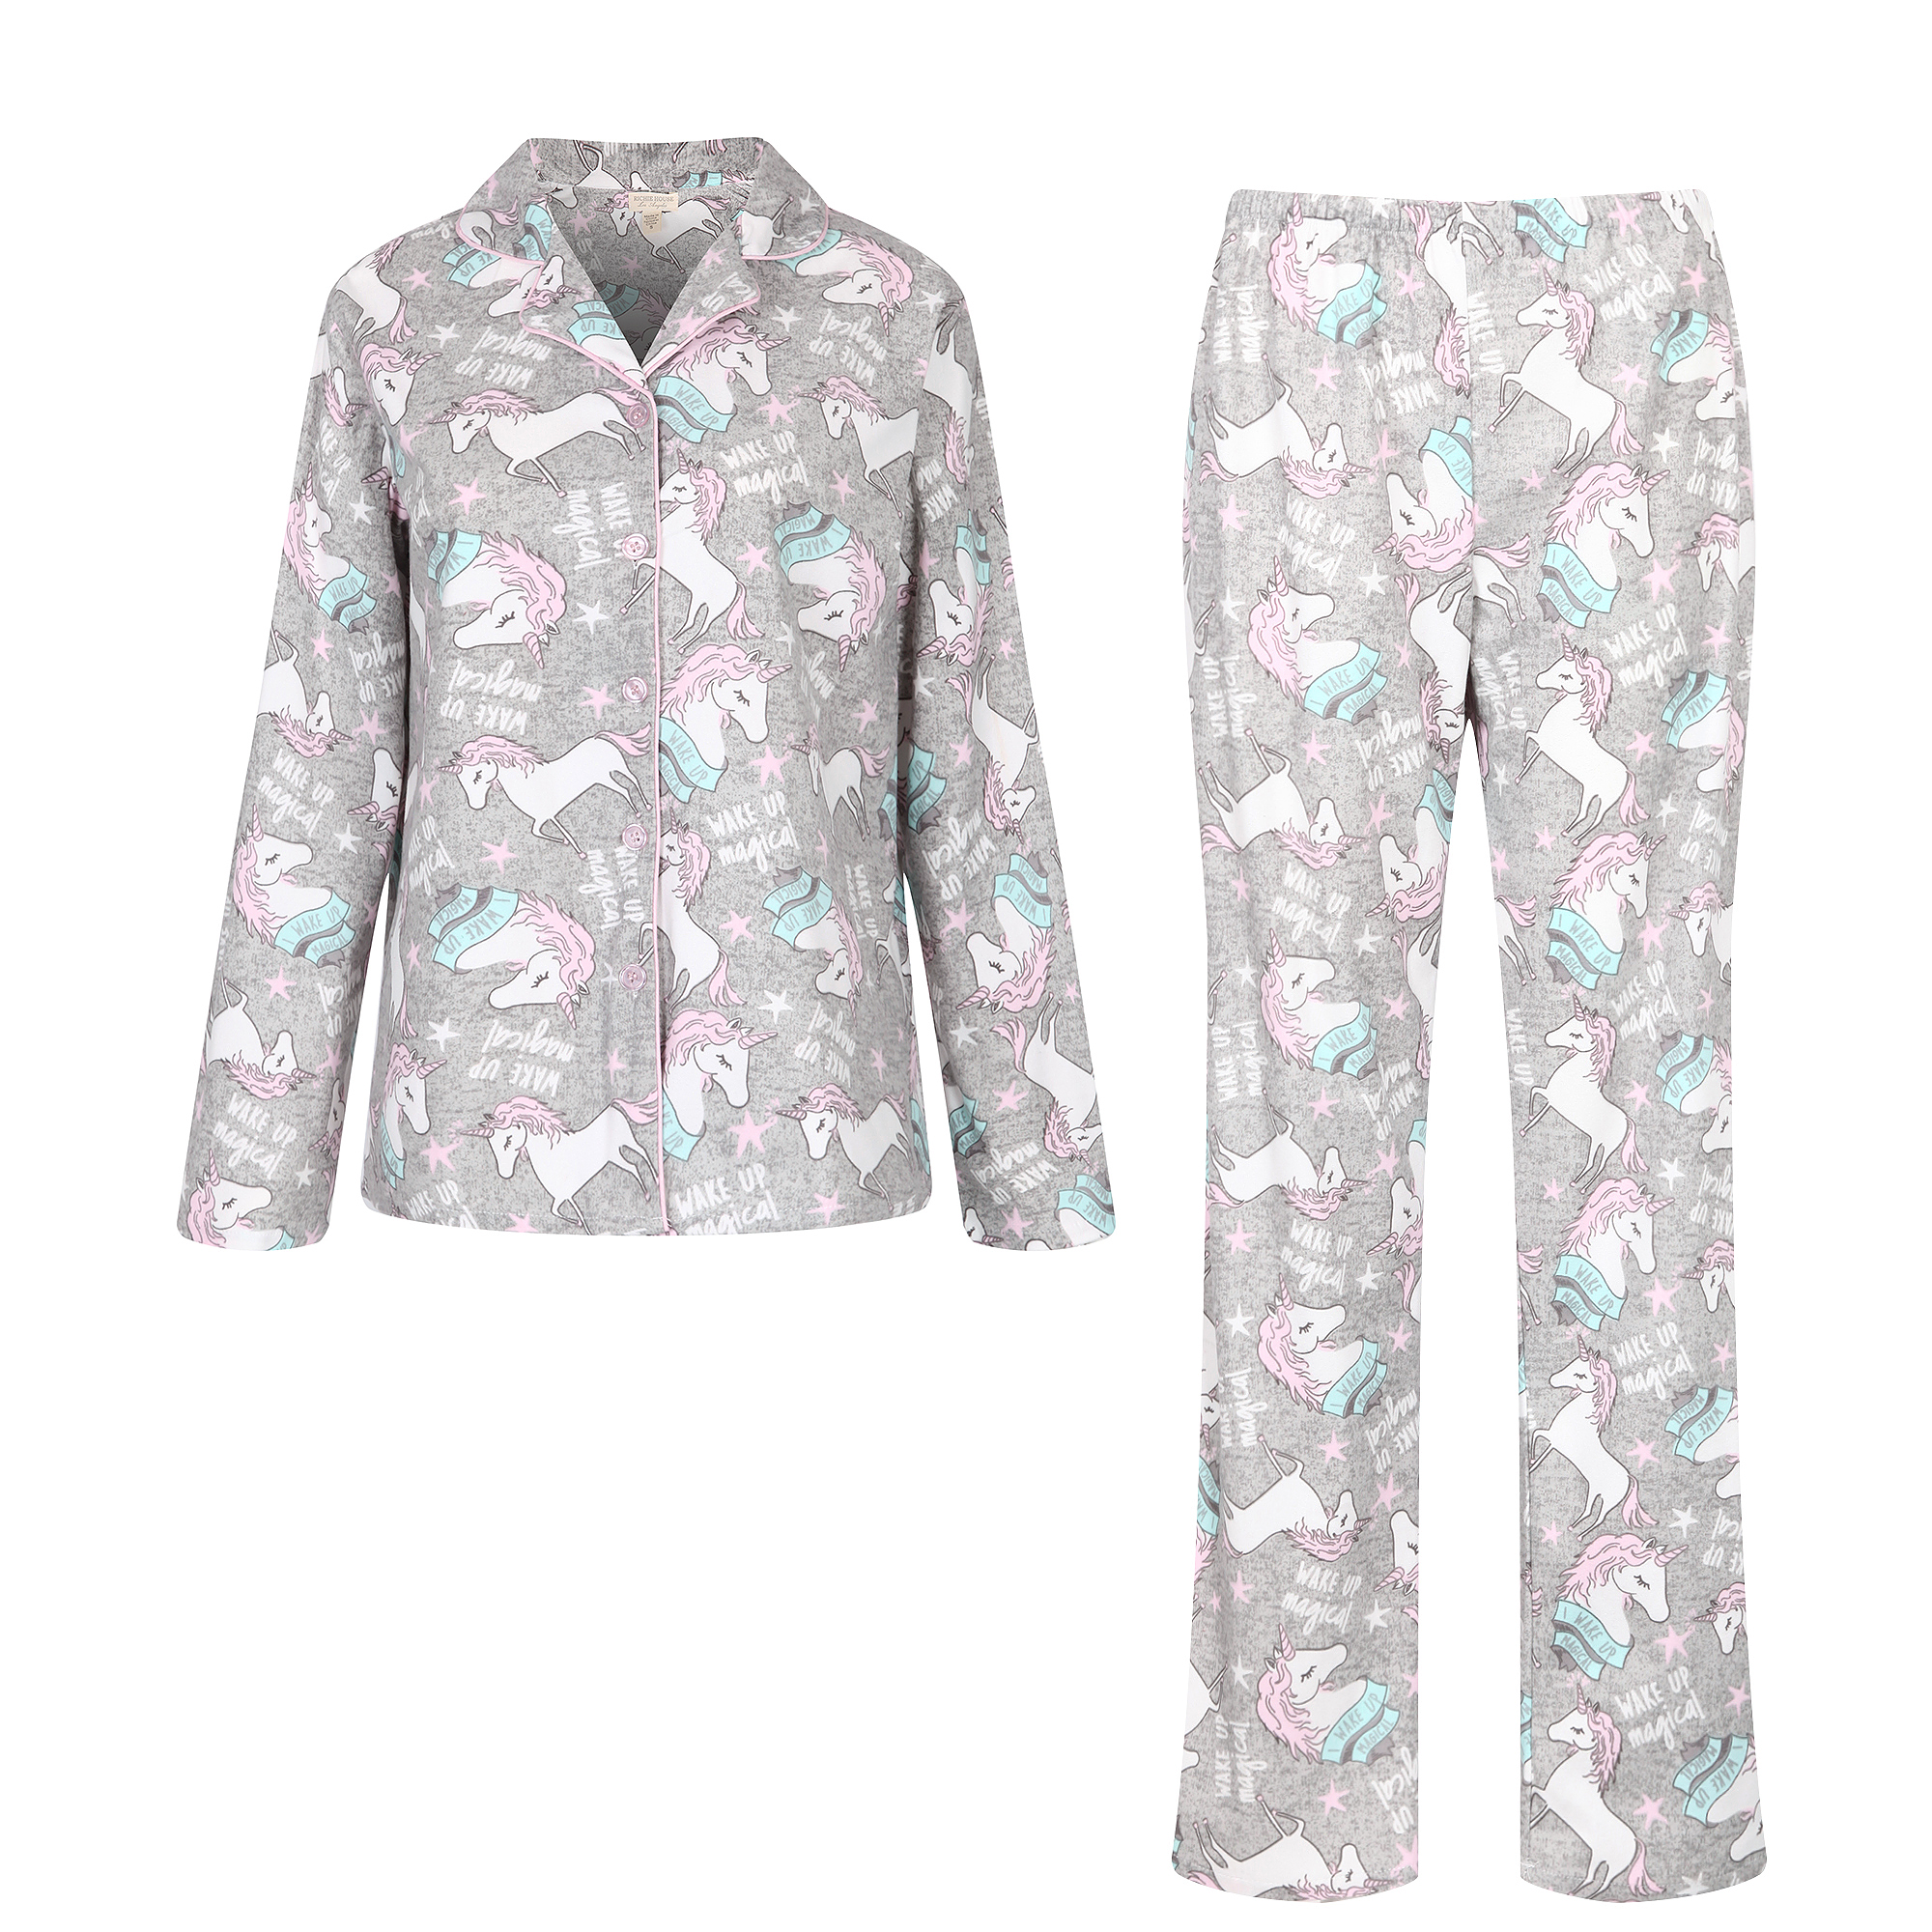 Richie House Women's Knit Flannel Pajama Sleepwear Set with Pants RHW2843